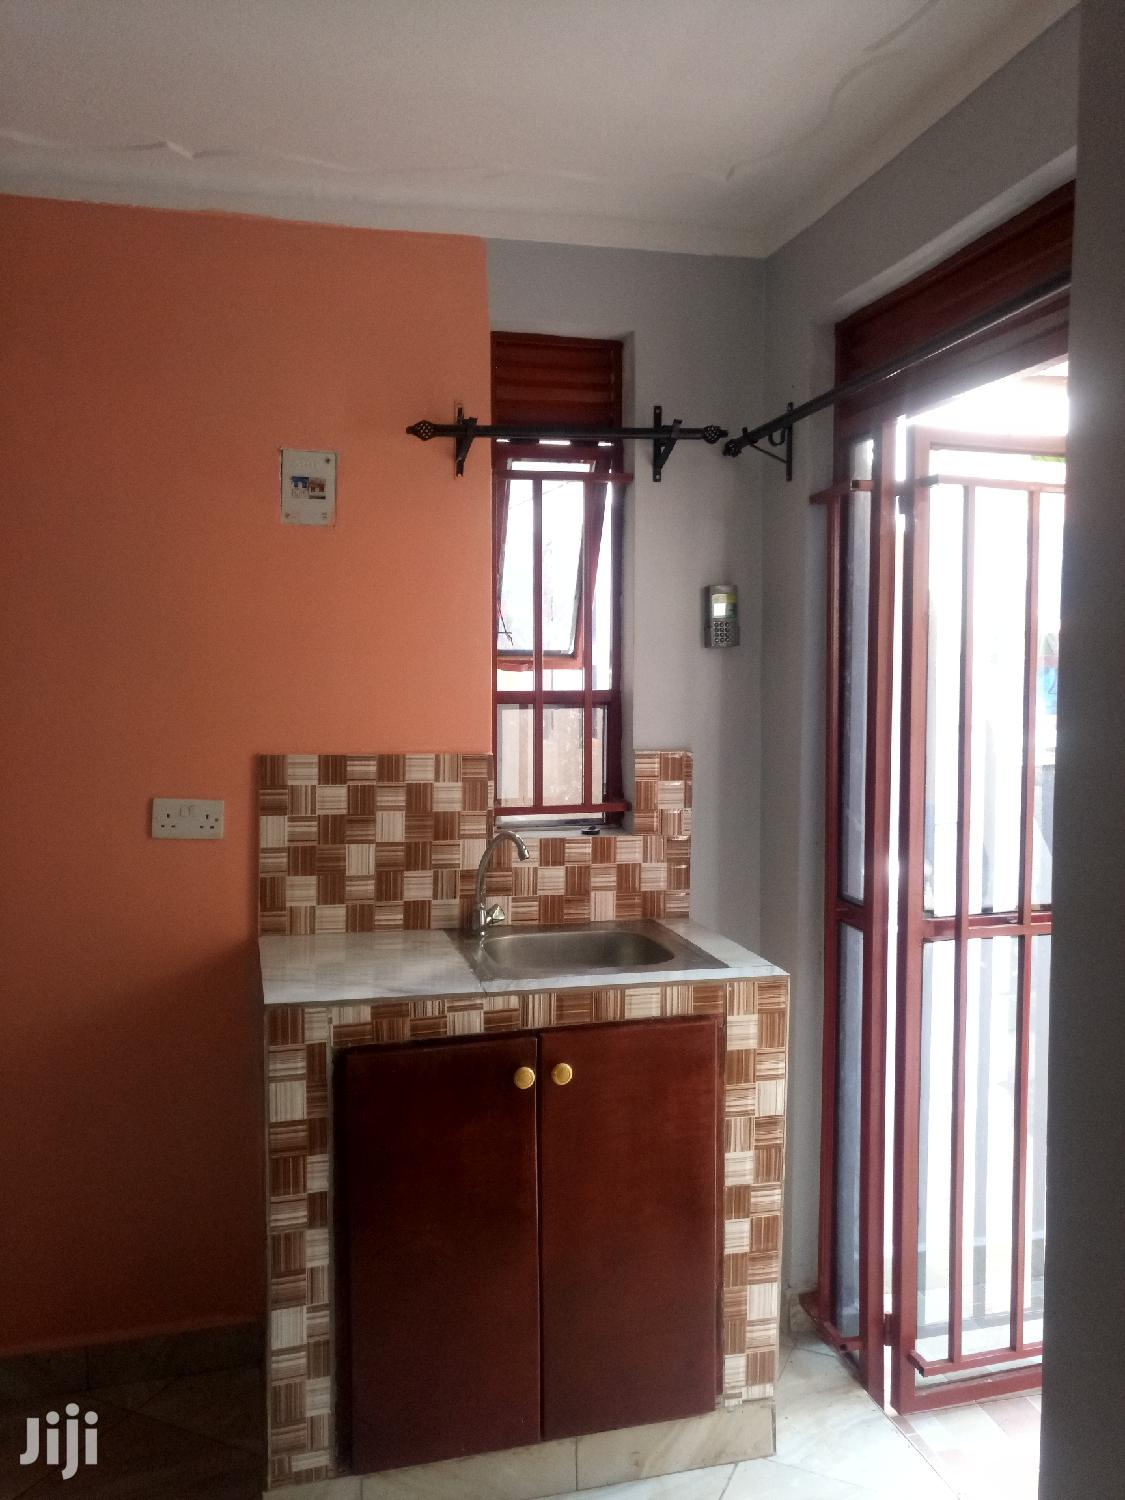 Amazing Studio Single Room for Rent in Kisaasi. | Houses & Apartments For Rent for sale in Kampala, Central Region, Uganda